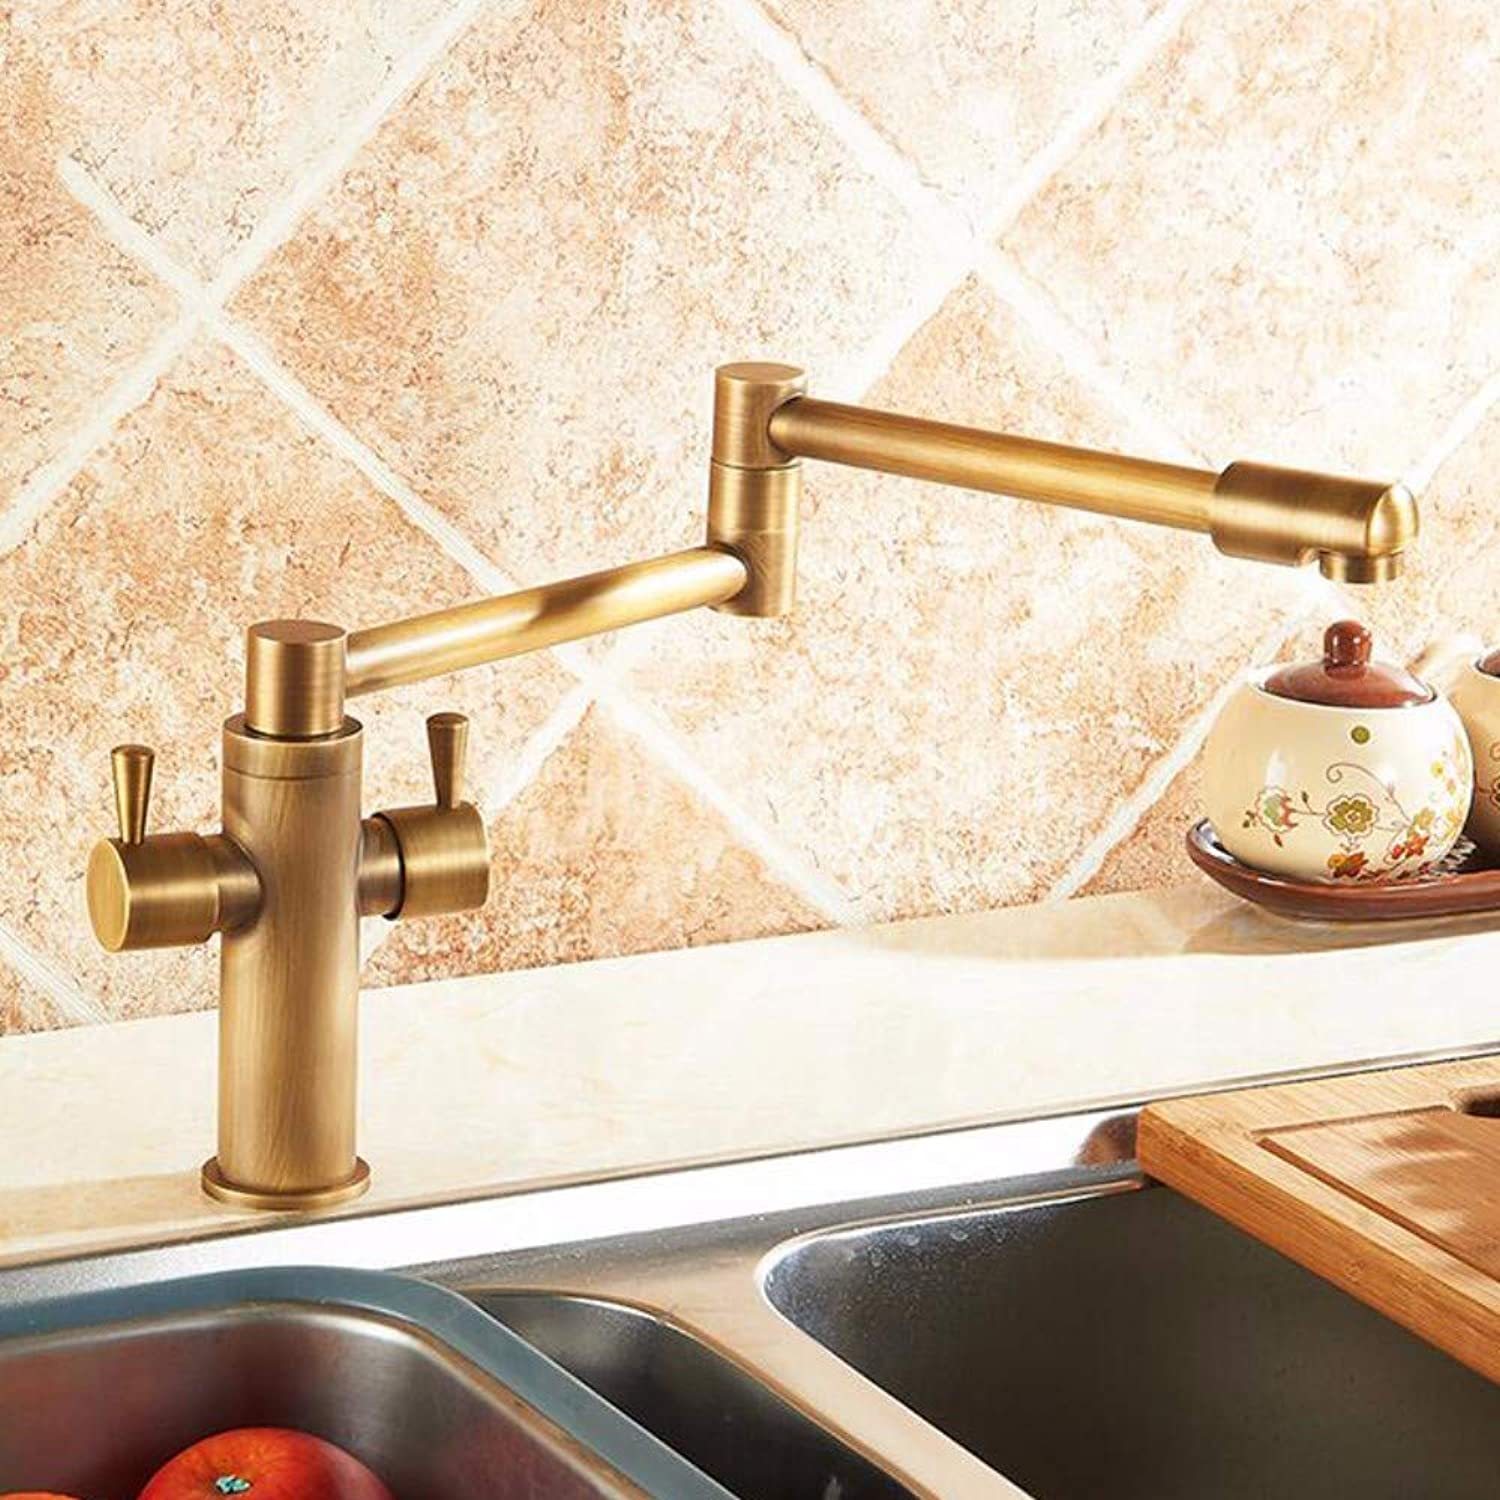 XHSSF-Kitchen tapKitchen Ancient Copper Hot and Cold 360 redary Faucet